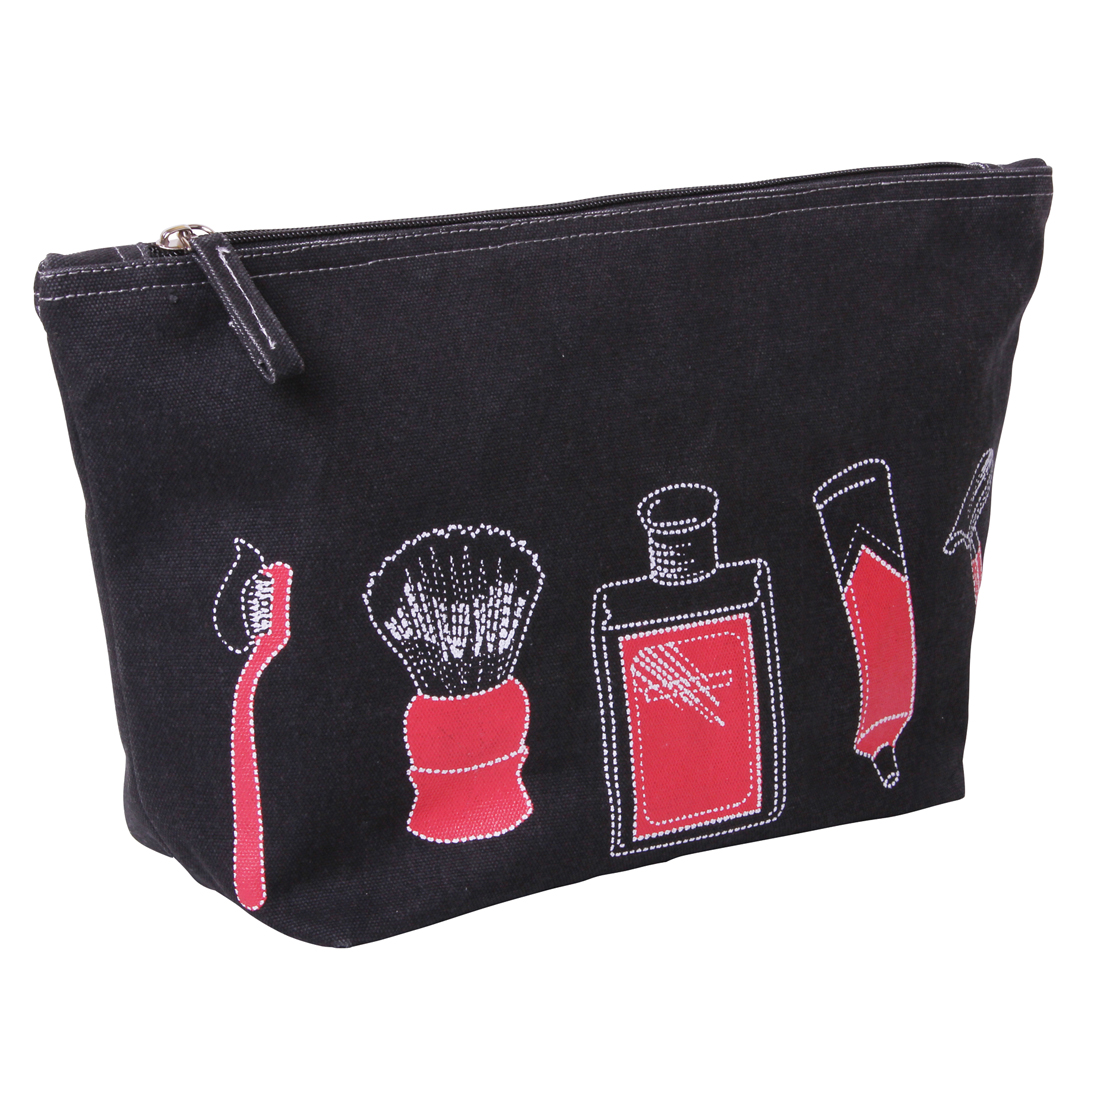 B 9300 1 - Grooming' Gents Canvas Collection - B9300